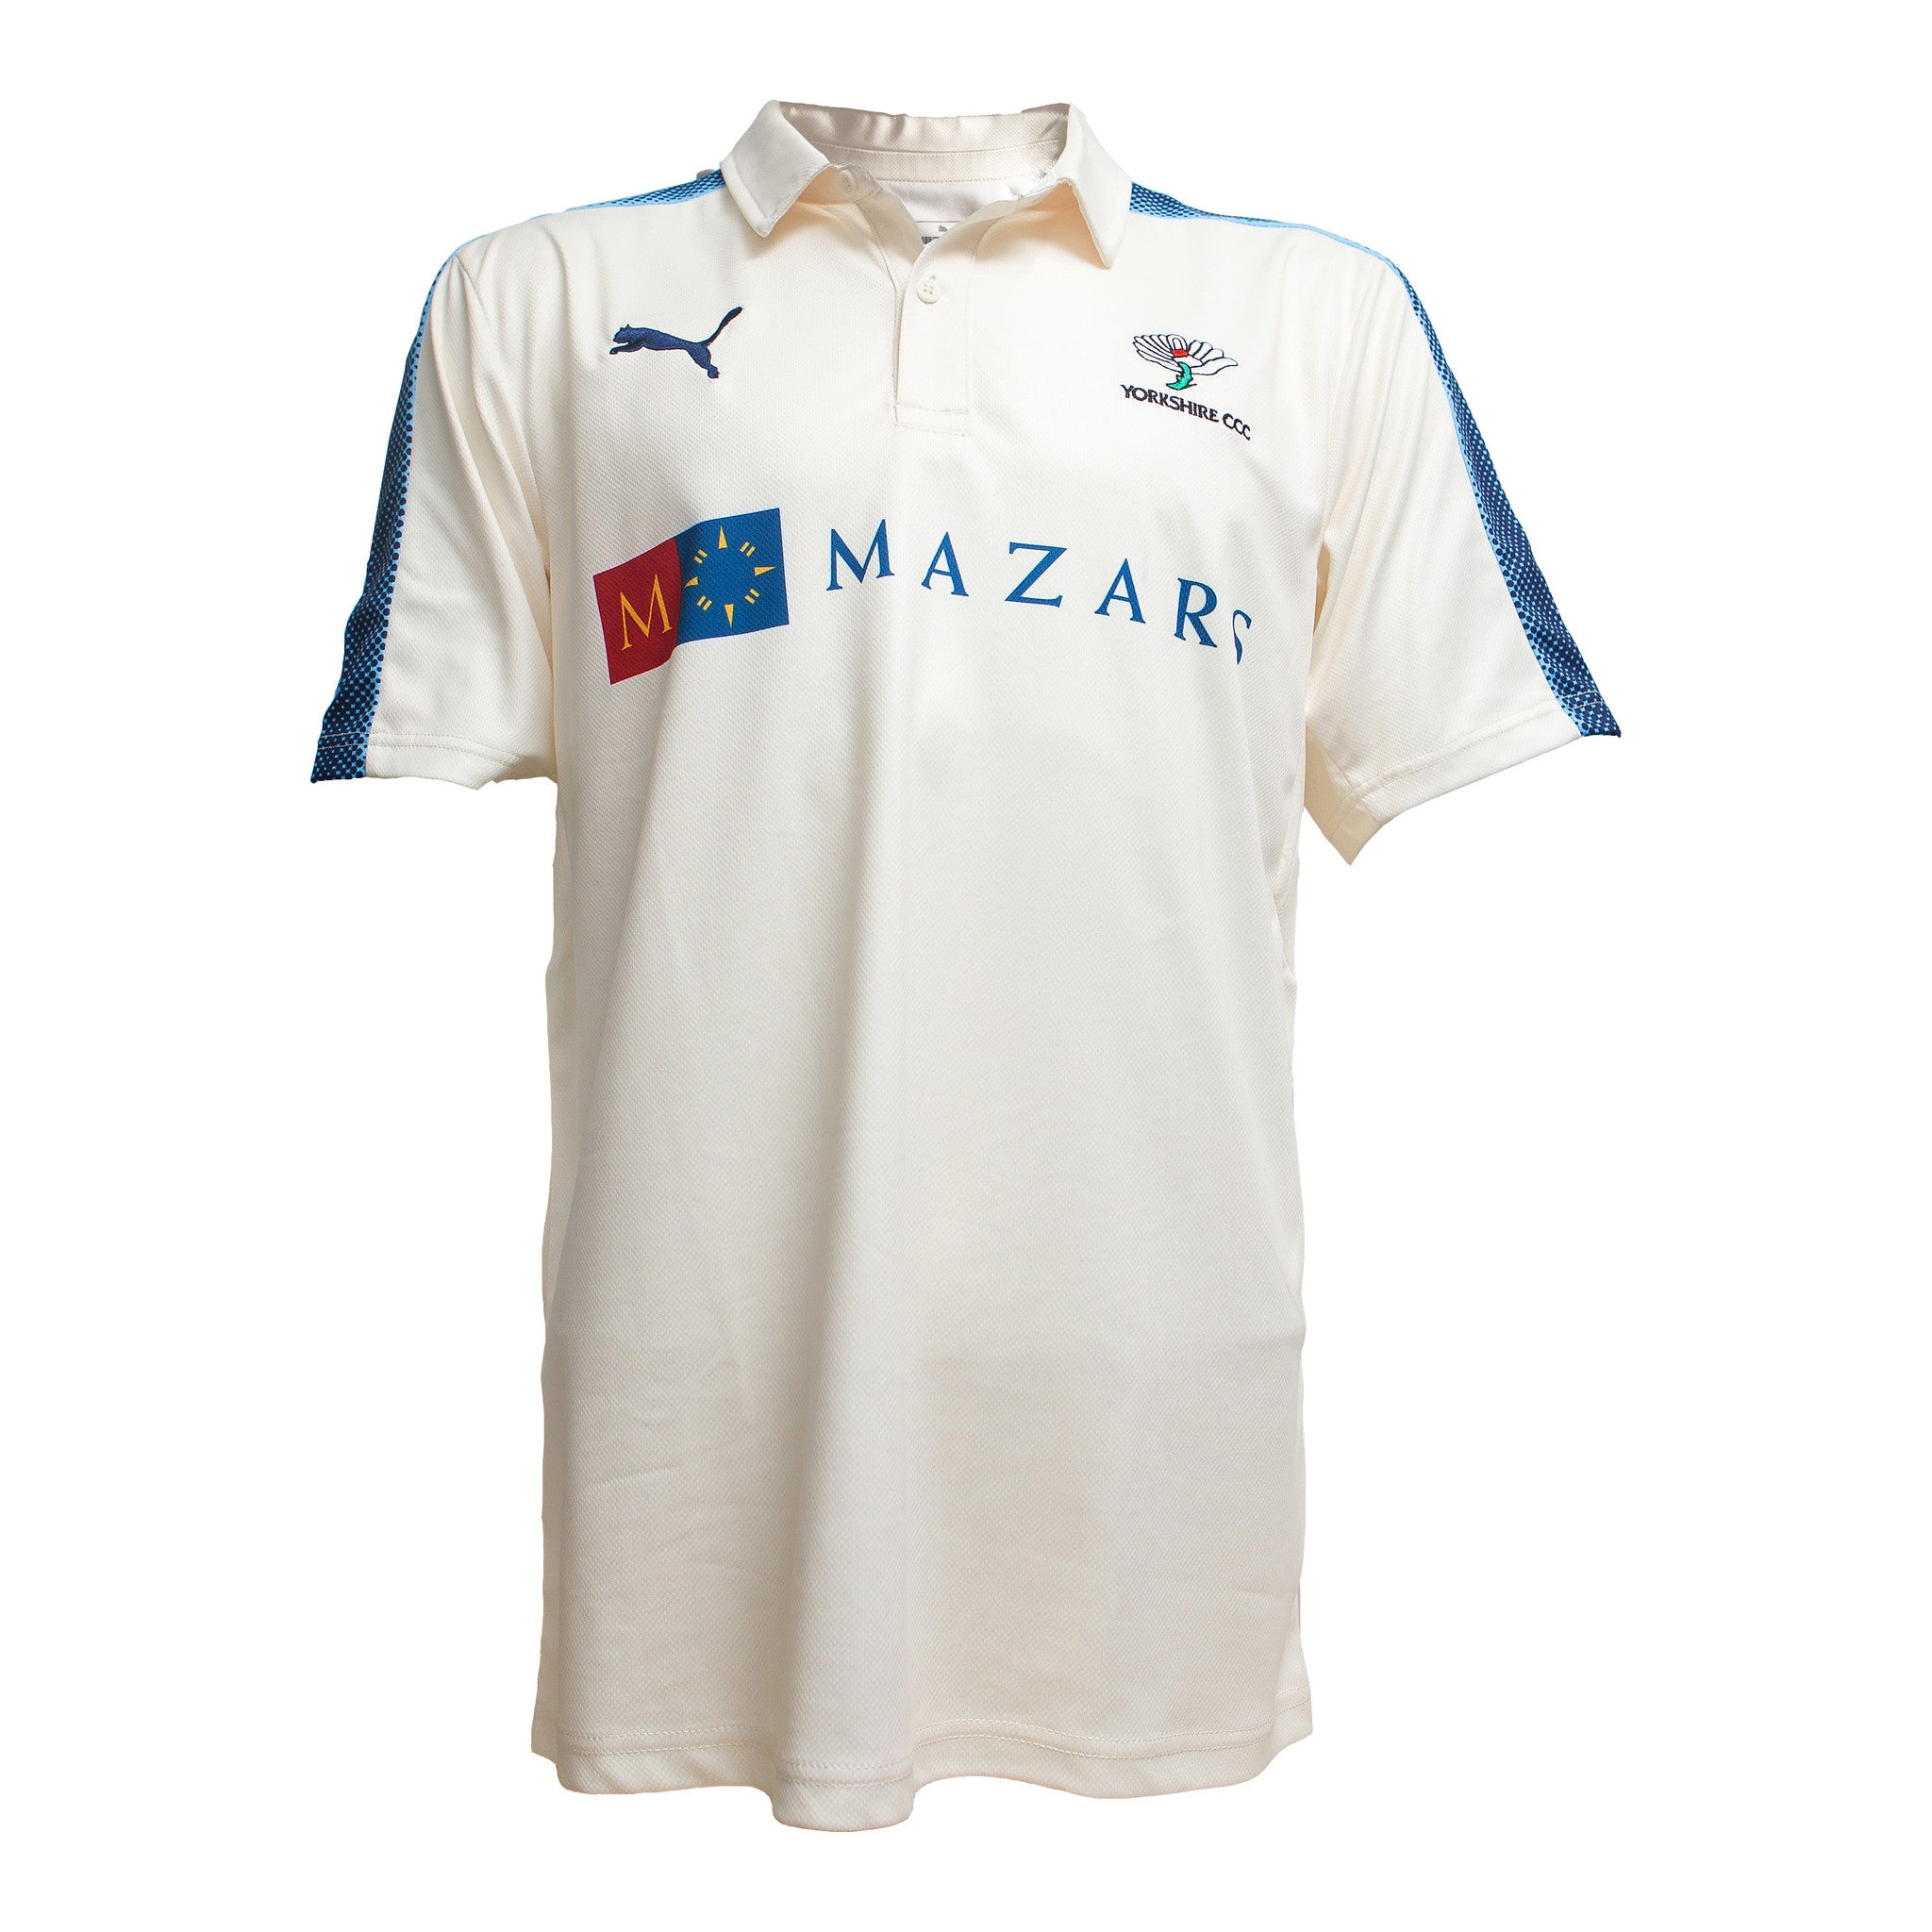 2017 Yorkshire County Championship Shirt starting from 32.00